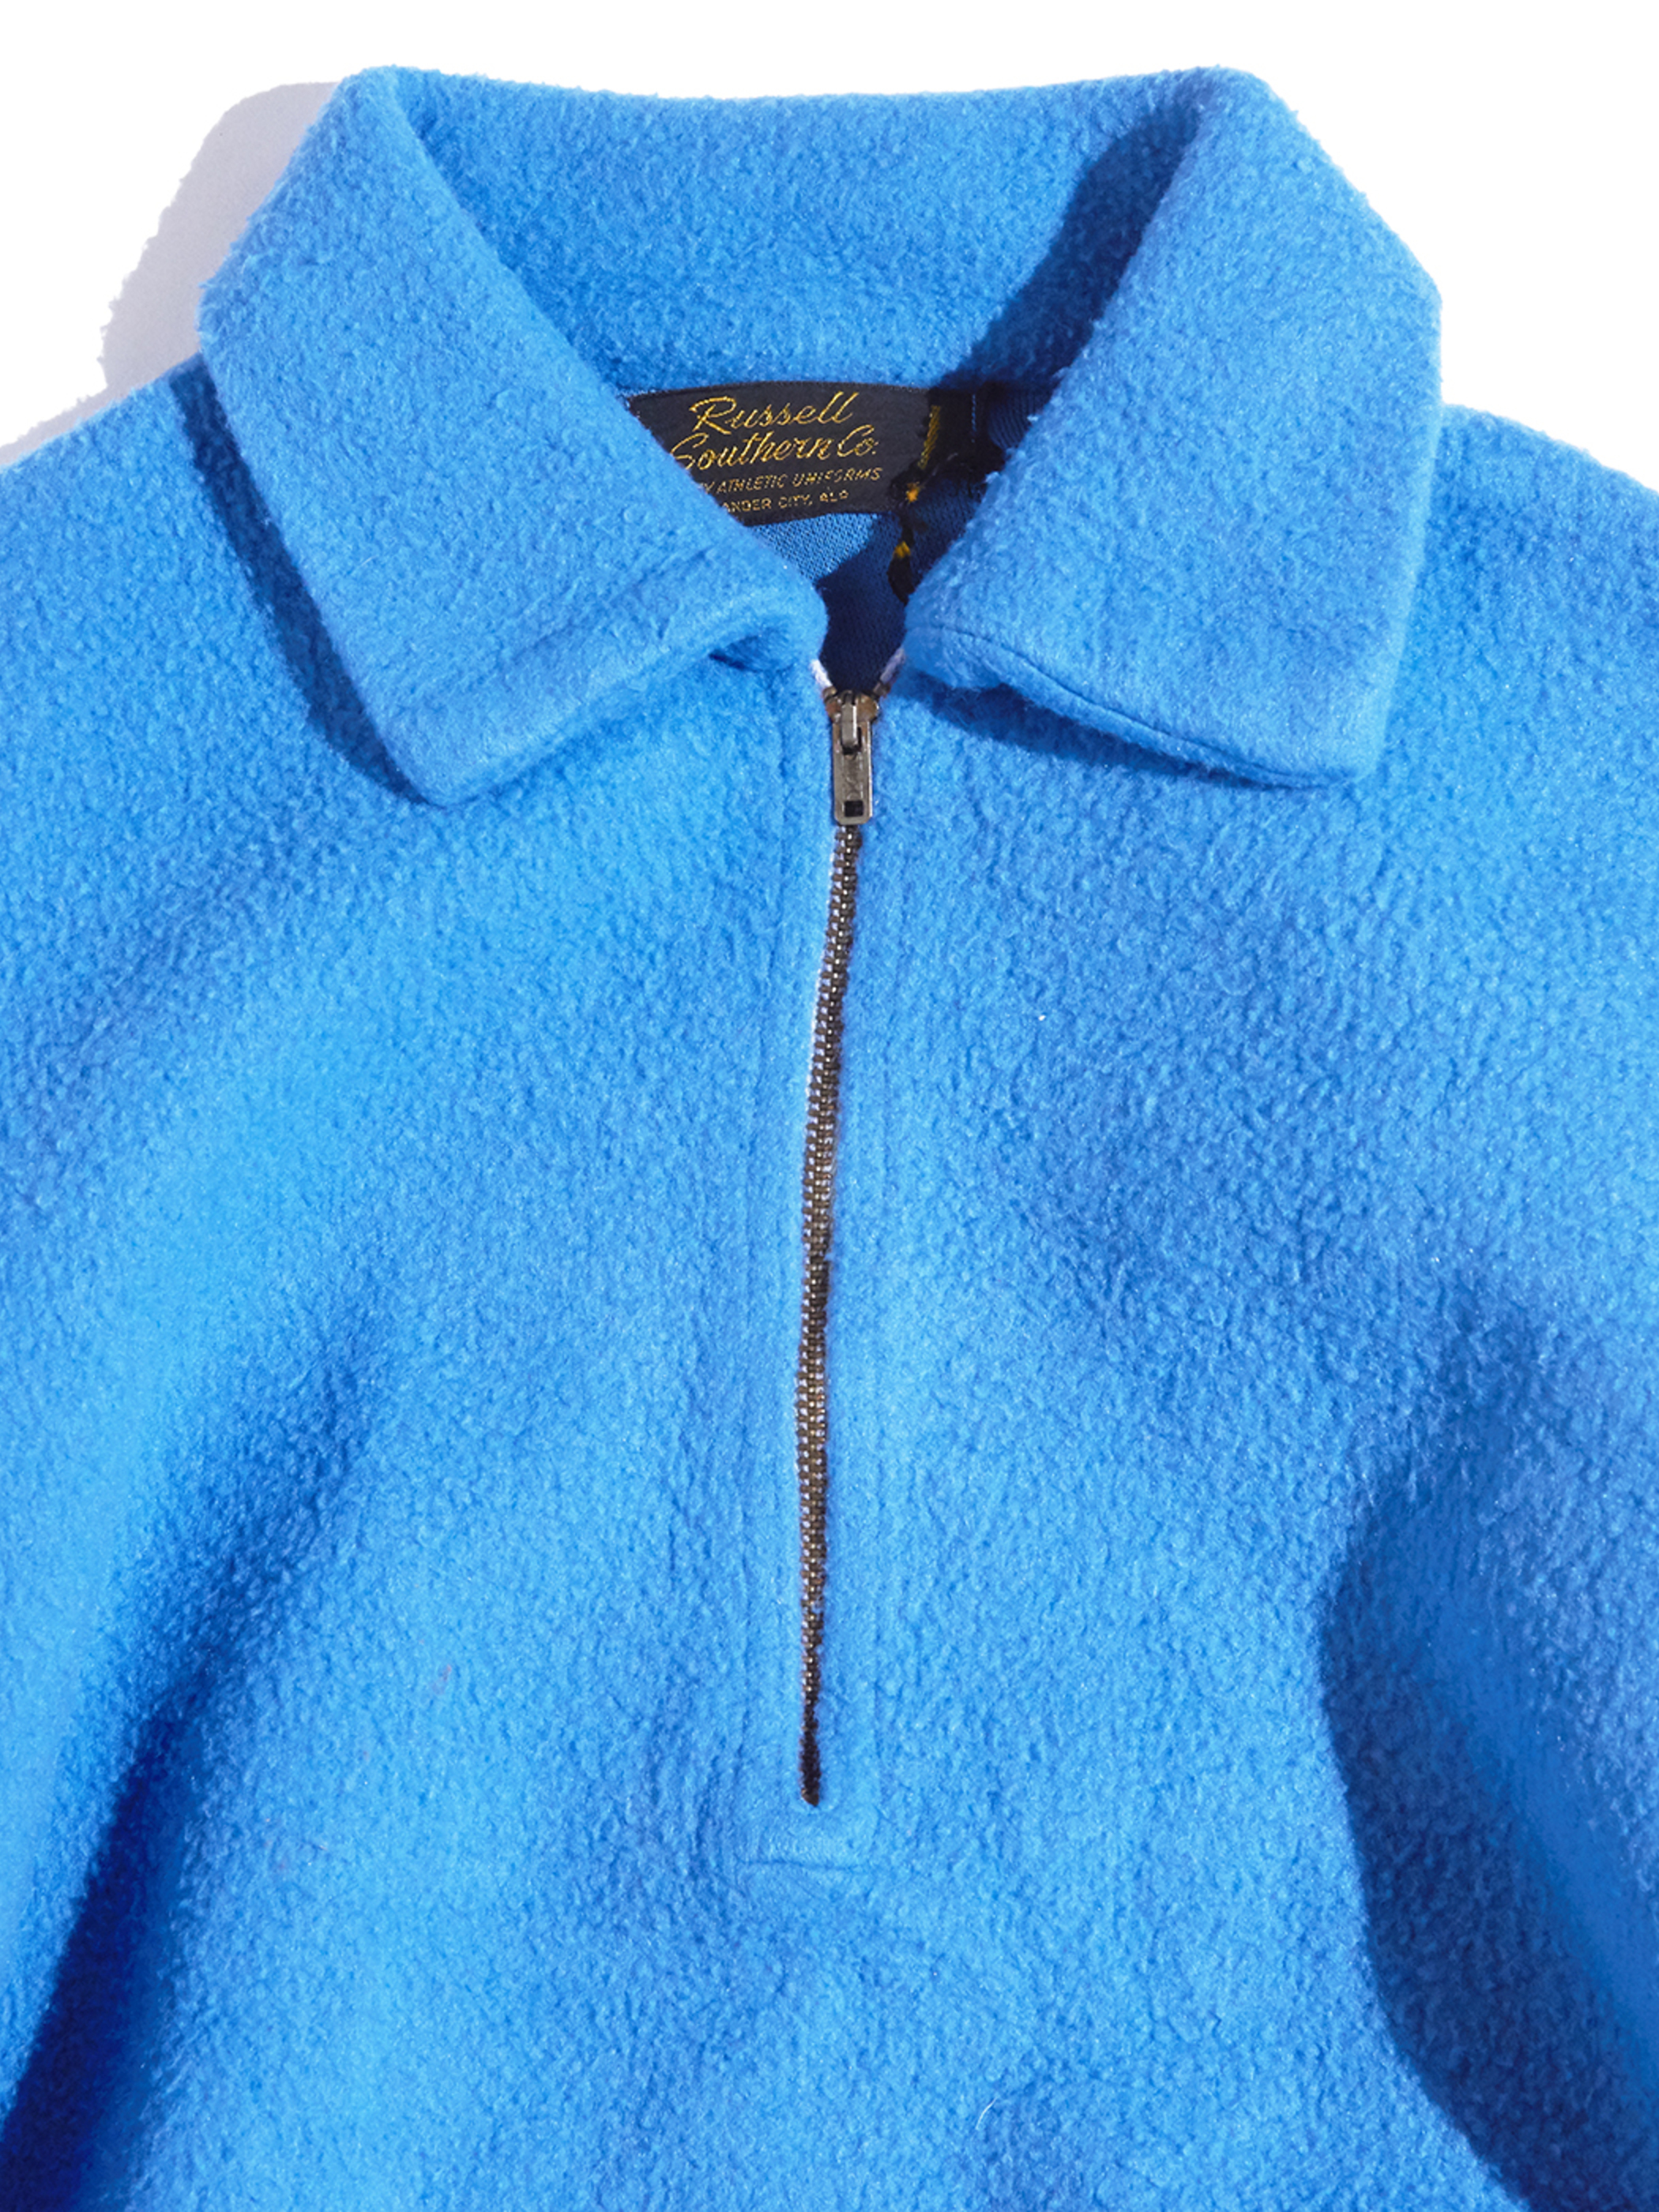 """1960s """"Russel Southern Co."""" acrylic pile pullover -SAX-"""